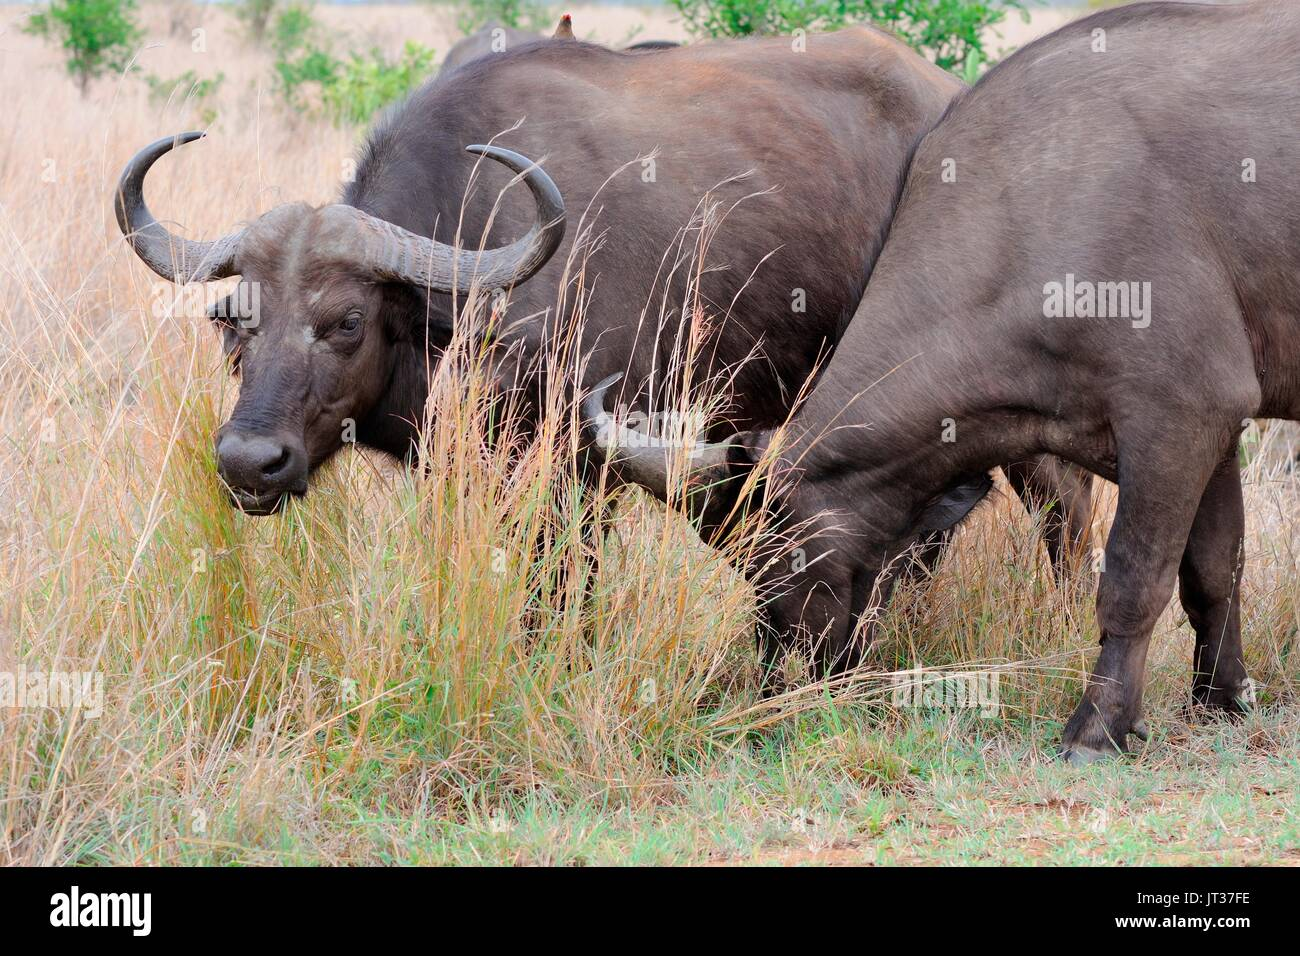 African buffaloes or Cape buffaloes (Syncerus caffer), feeding on grass, Kruger National Park, South Africa, Africa - Stock Image